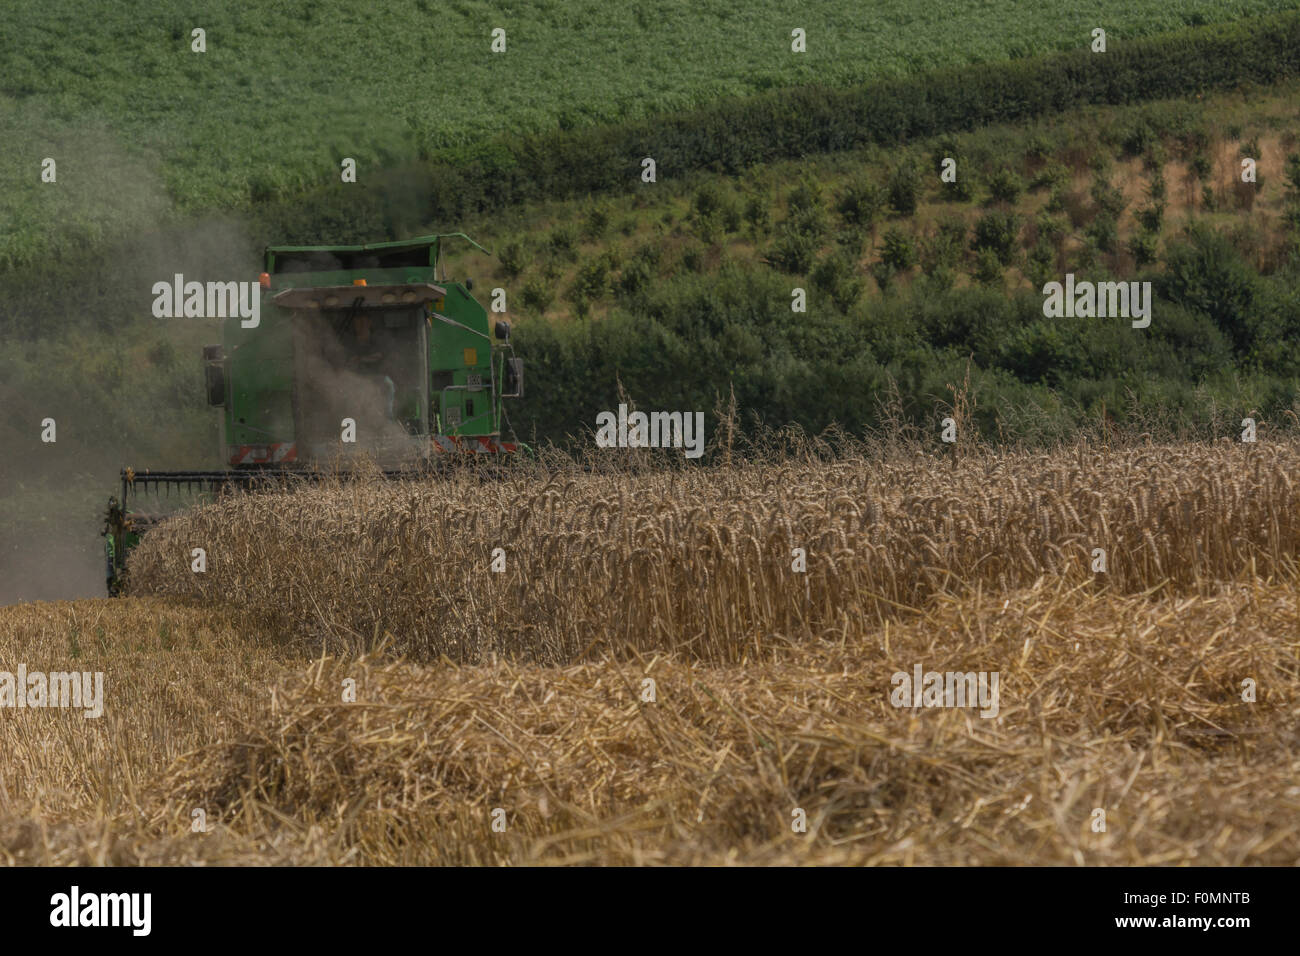 Combine harvester cutting cereal crop - on sloping ground / field. Metaphor for food security / growing food. - Stock Image